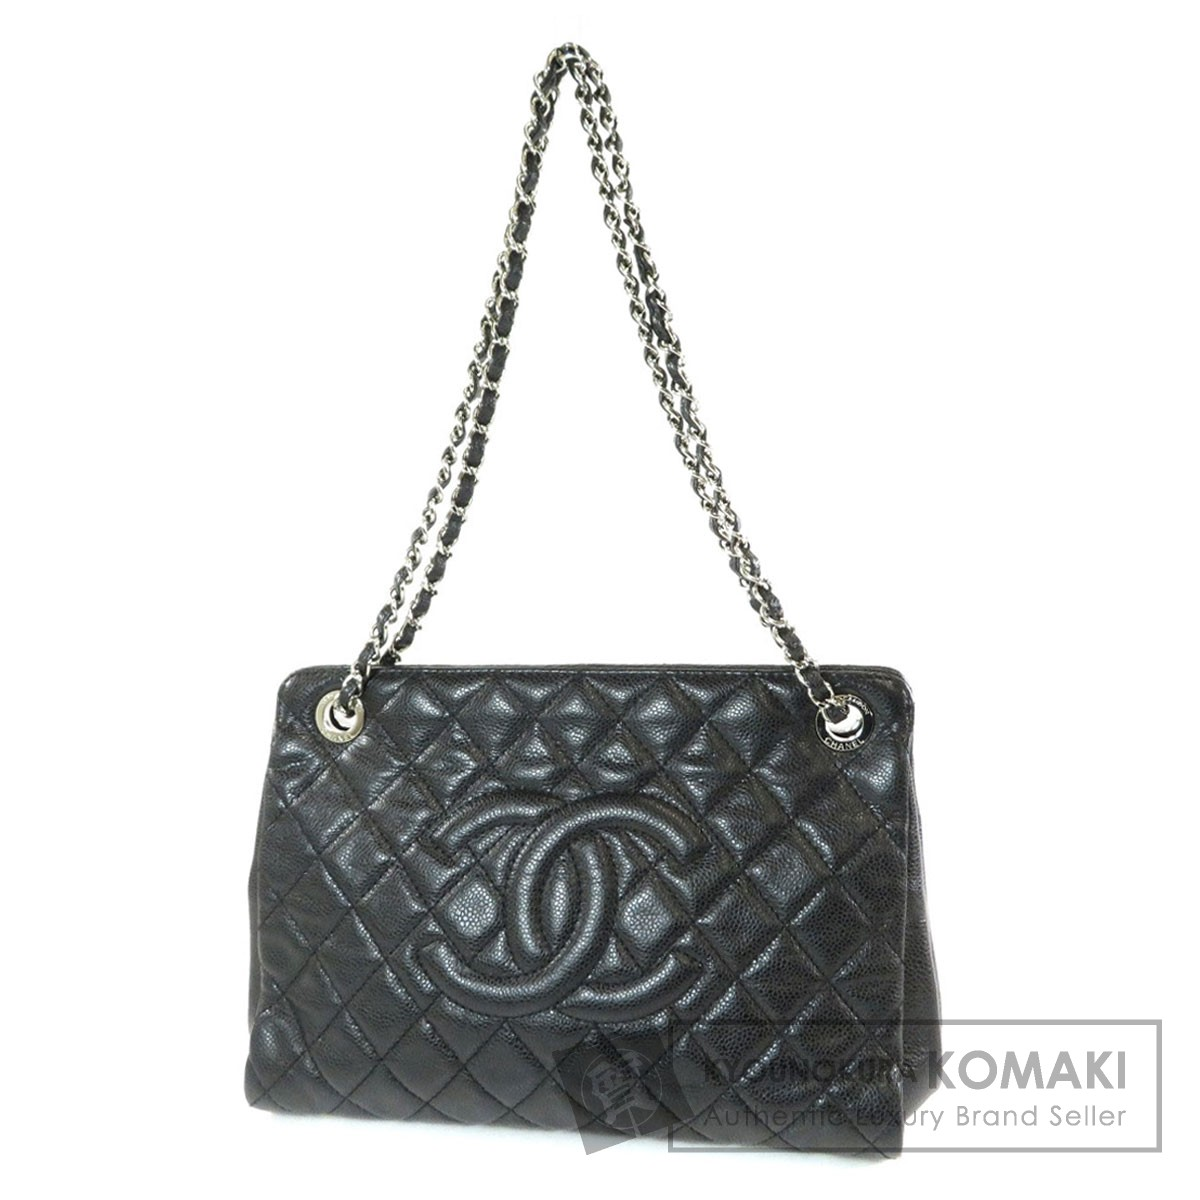 71328e8d6a58 Kyonokura Komaki Brand Cheapest Challenger: Authentic CHANEL COCO ...